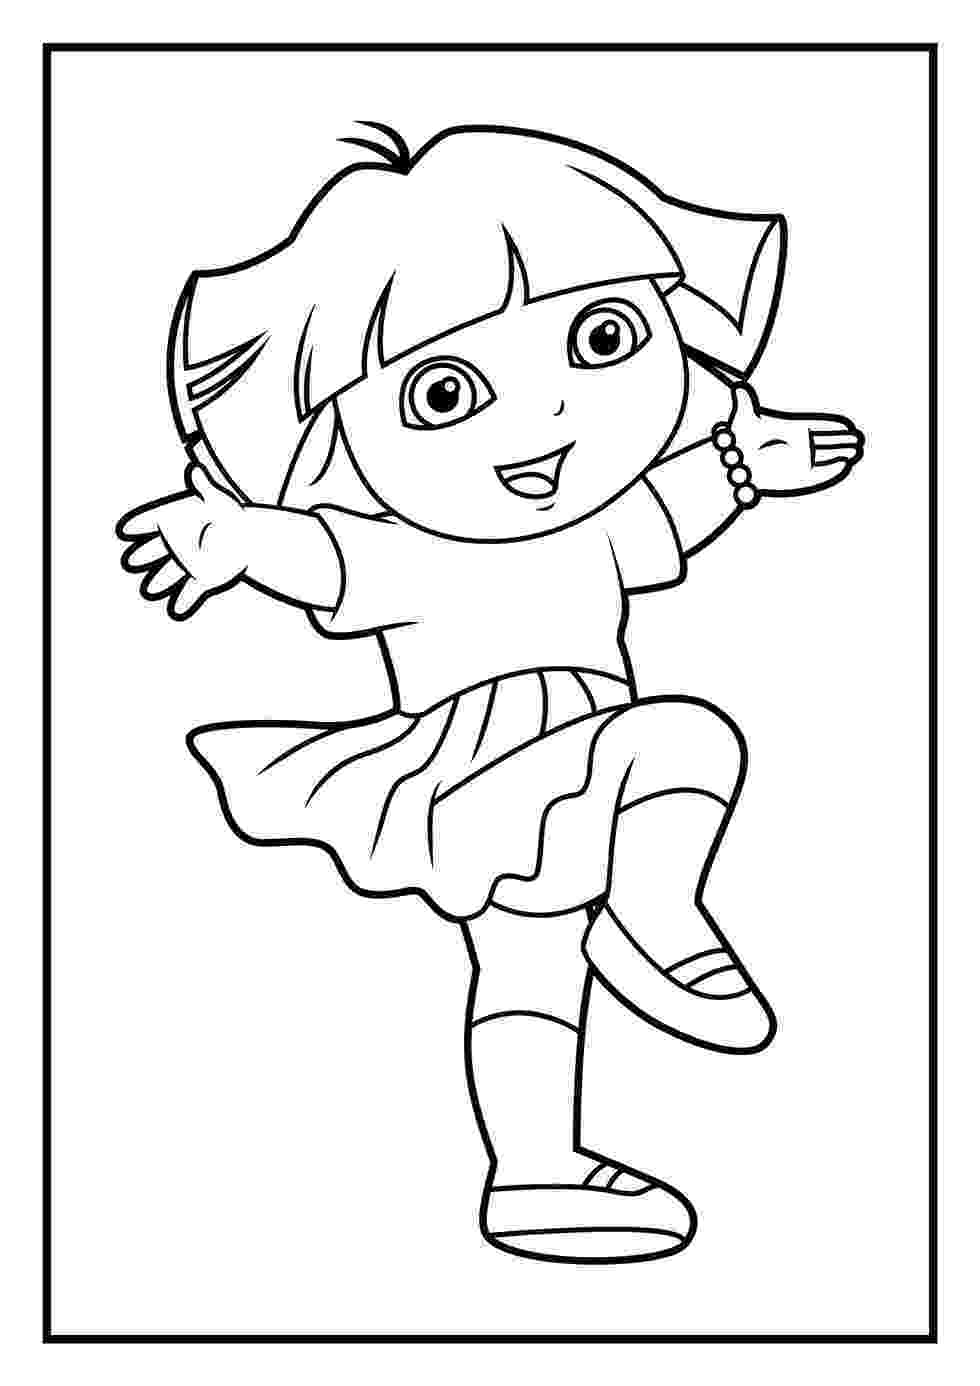 colouring pages dora dora coloring pages diego coloring pages colouring pages dora